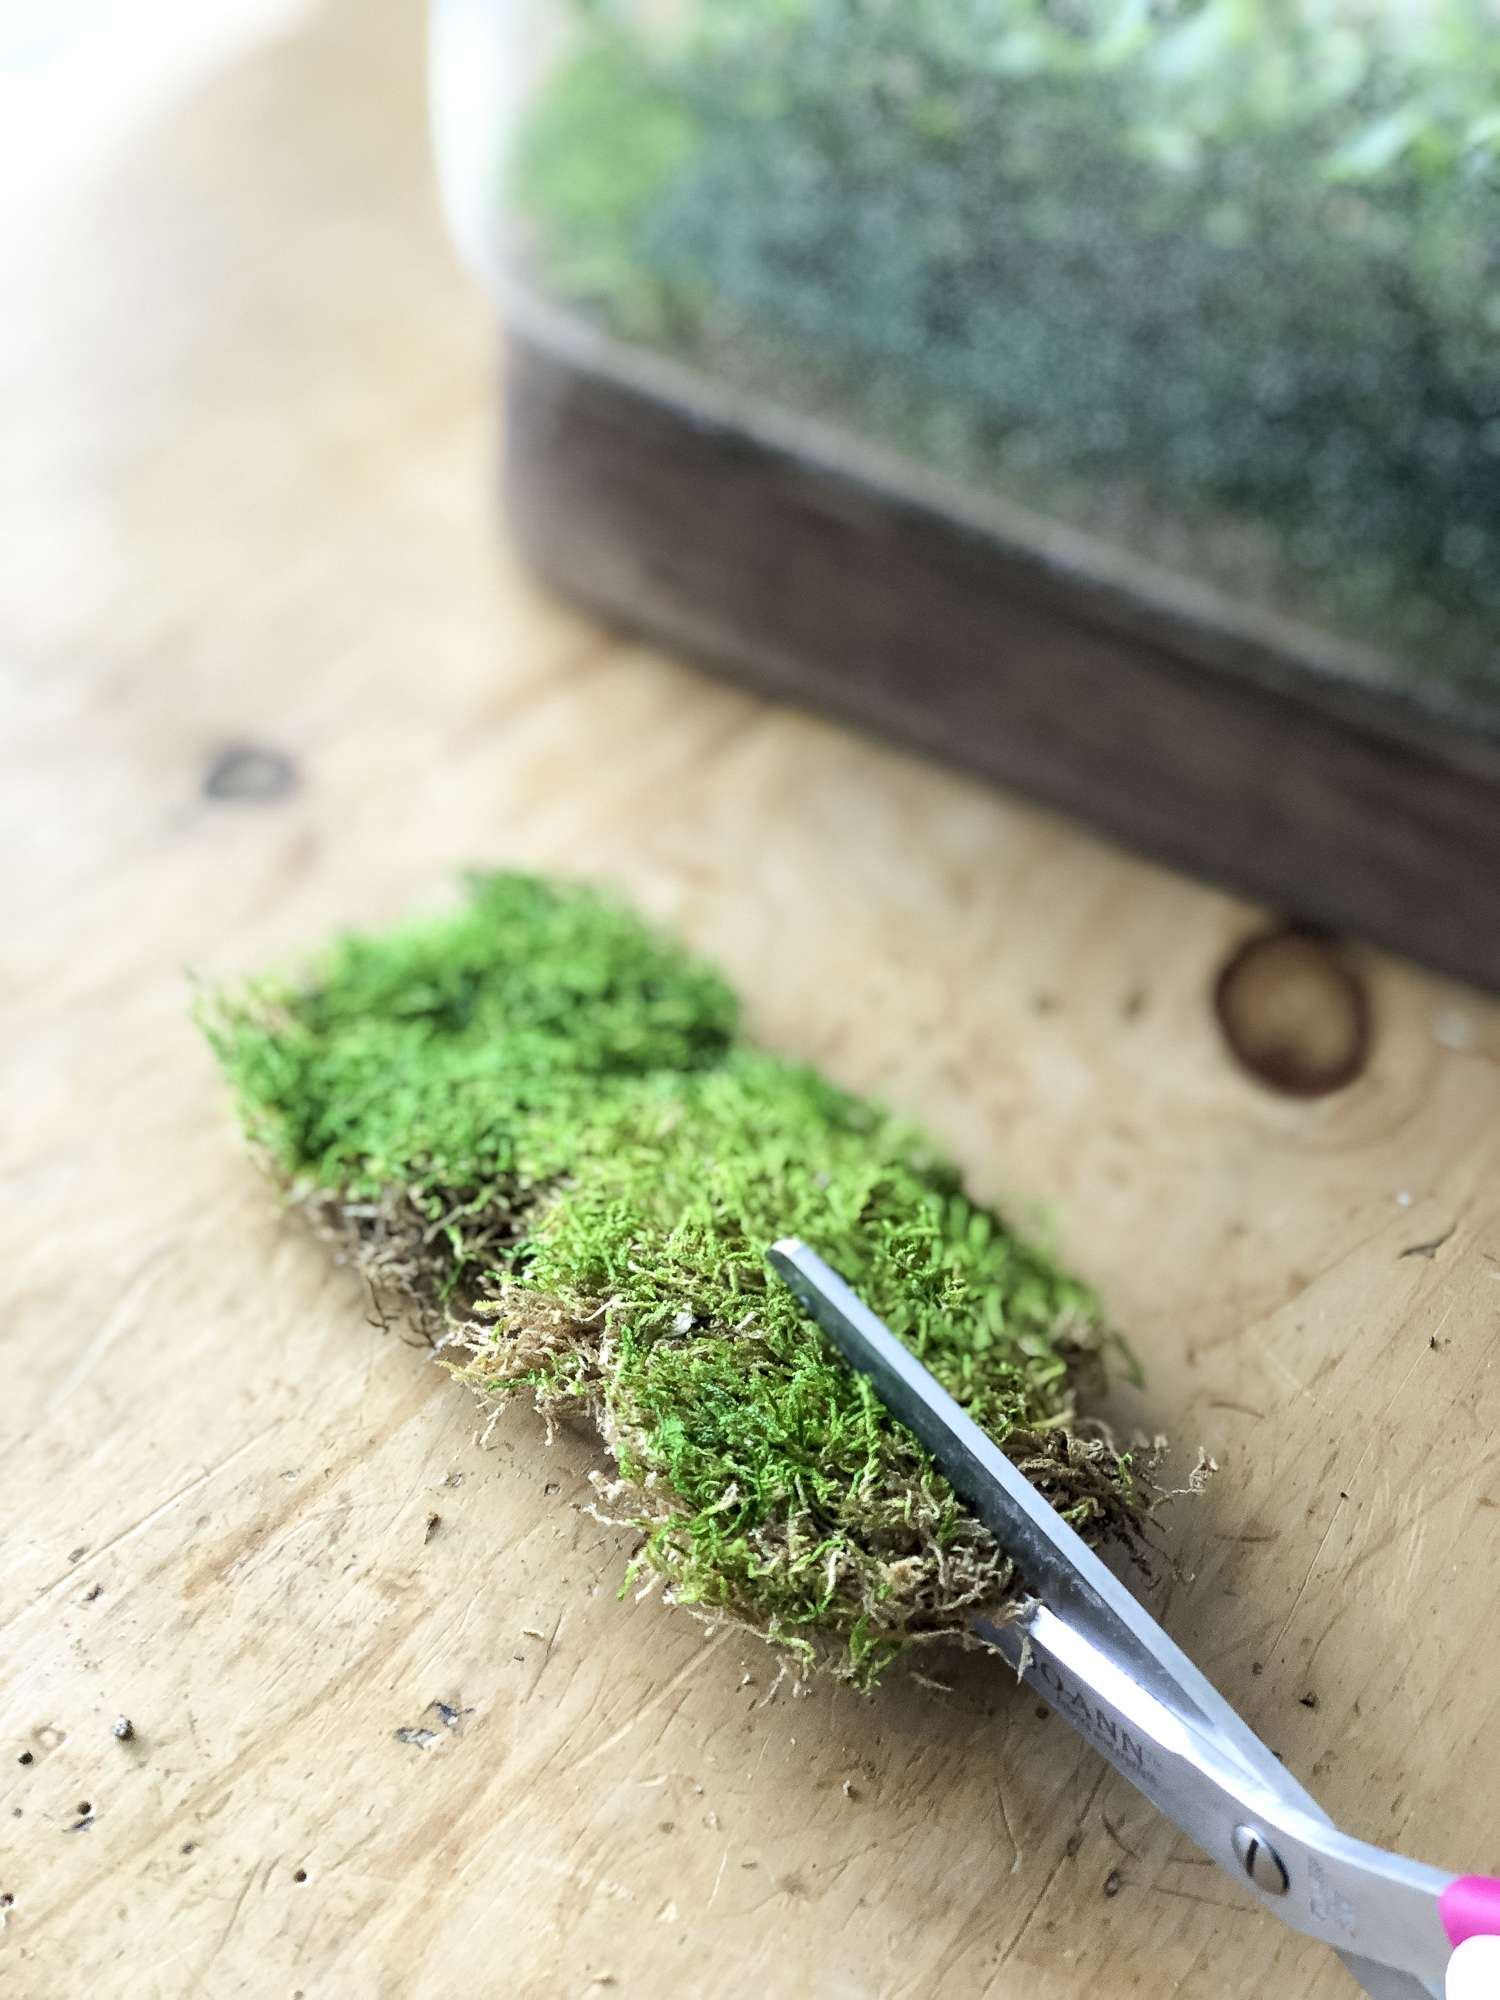 Do you love the look of terrariums? Try out this simple DIY faux terrarium! Brighten your home in less than 10 minutes with this easy tutorial. #fromhousetohaven #diyterrarium #fauxterrarium #plants